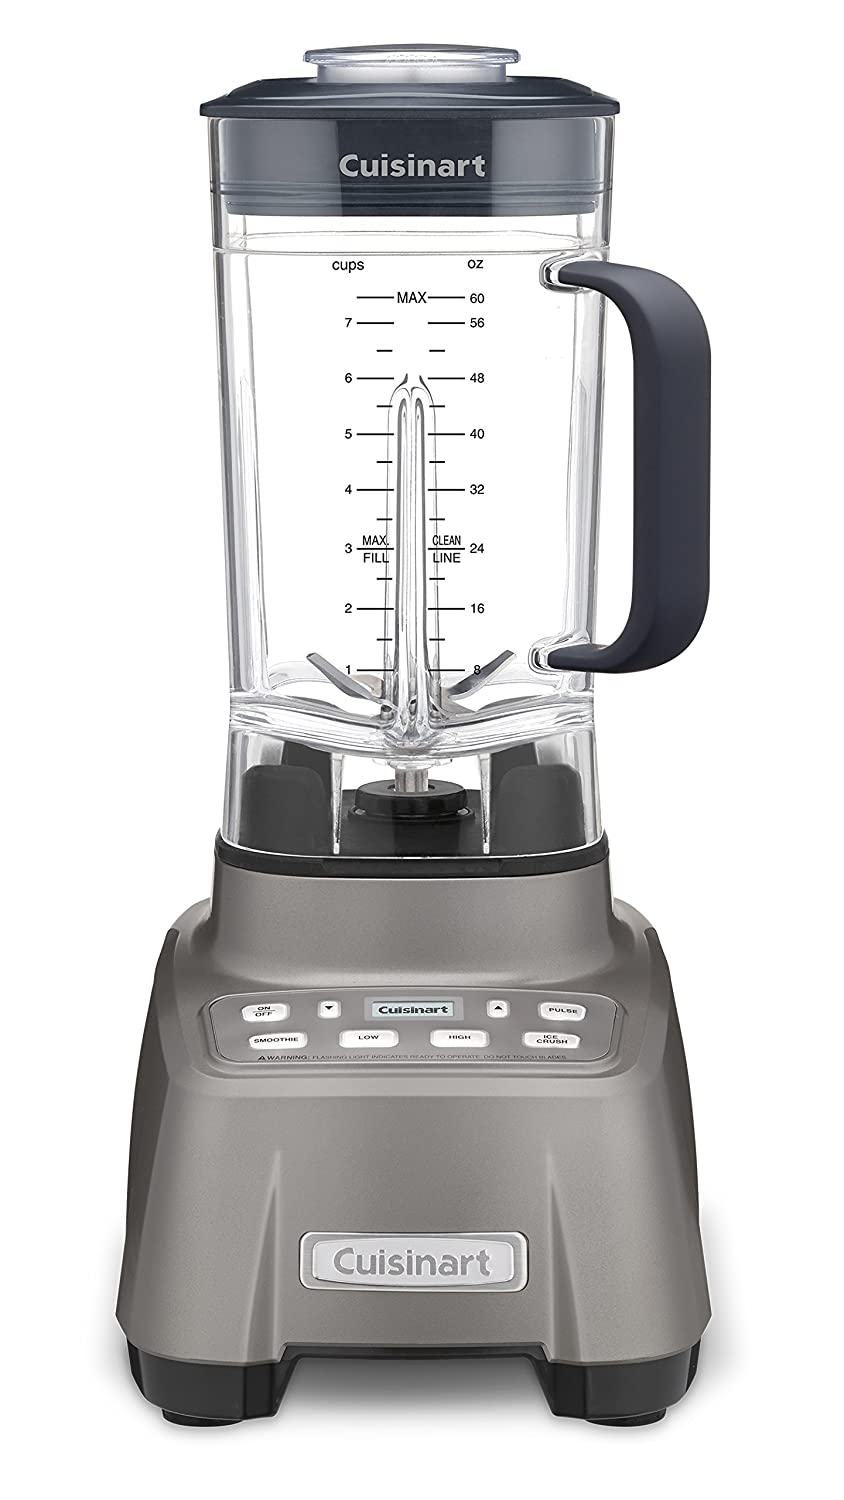 Top 10 Best Blender for Smoothies with Ice - Buyer's Guide 9